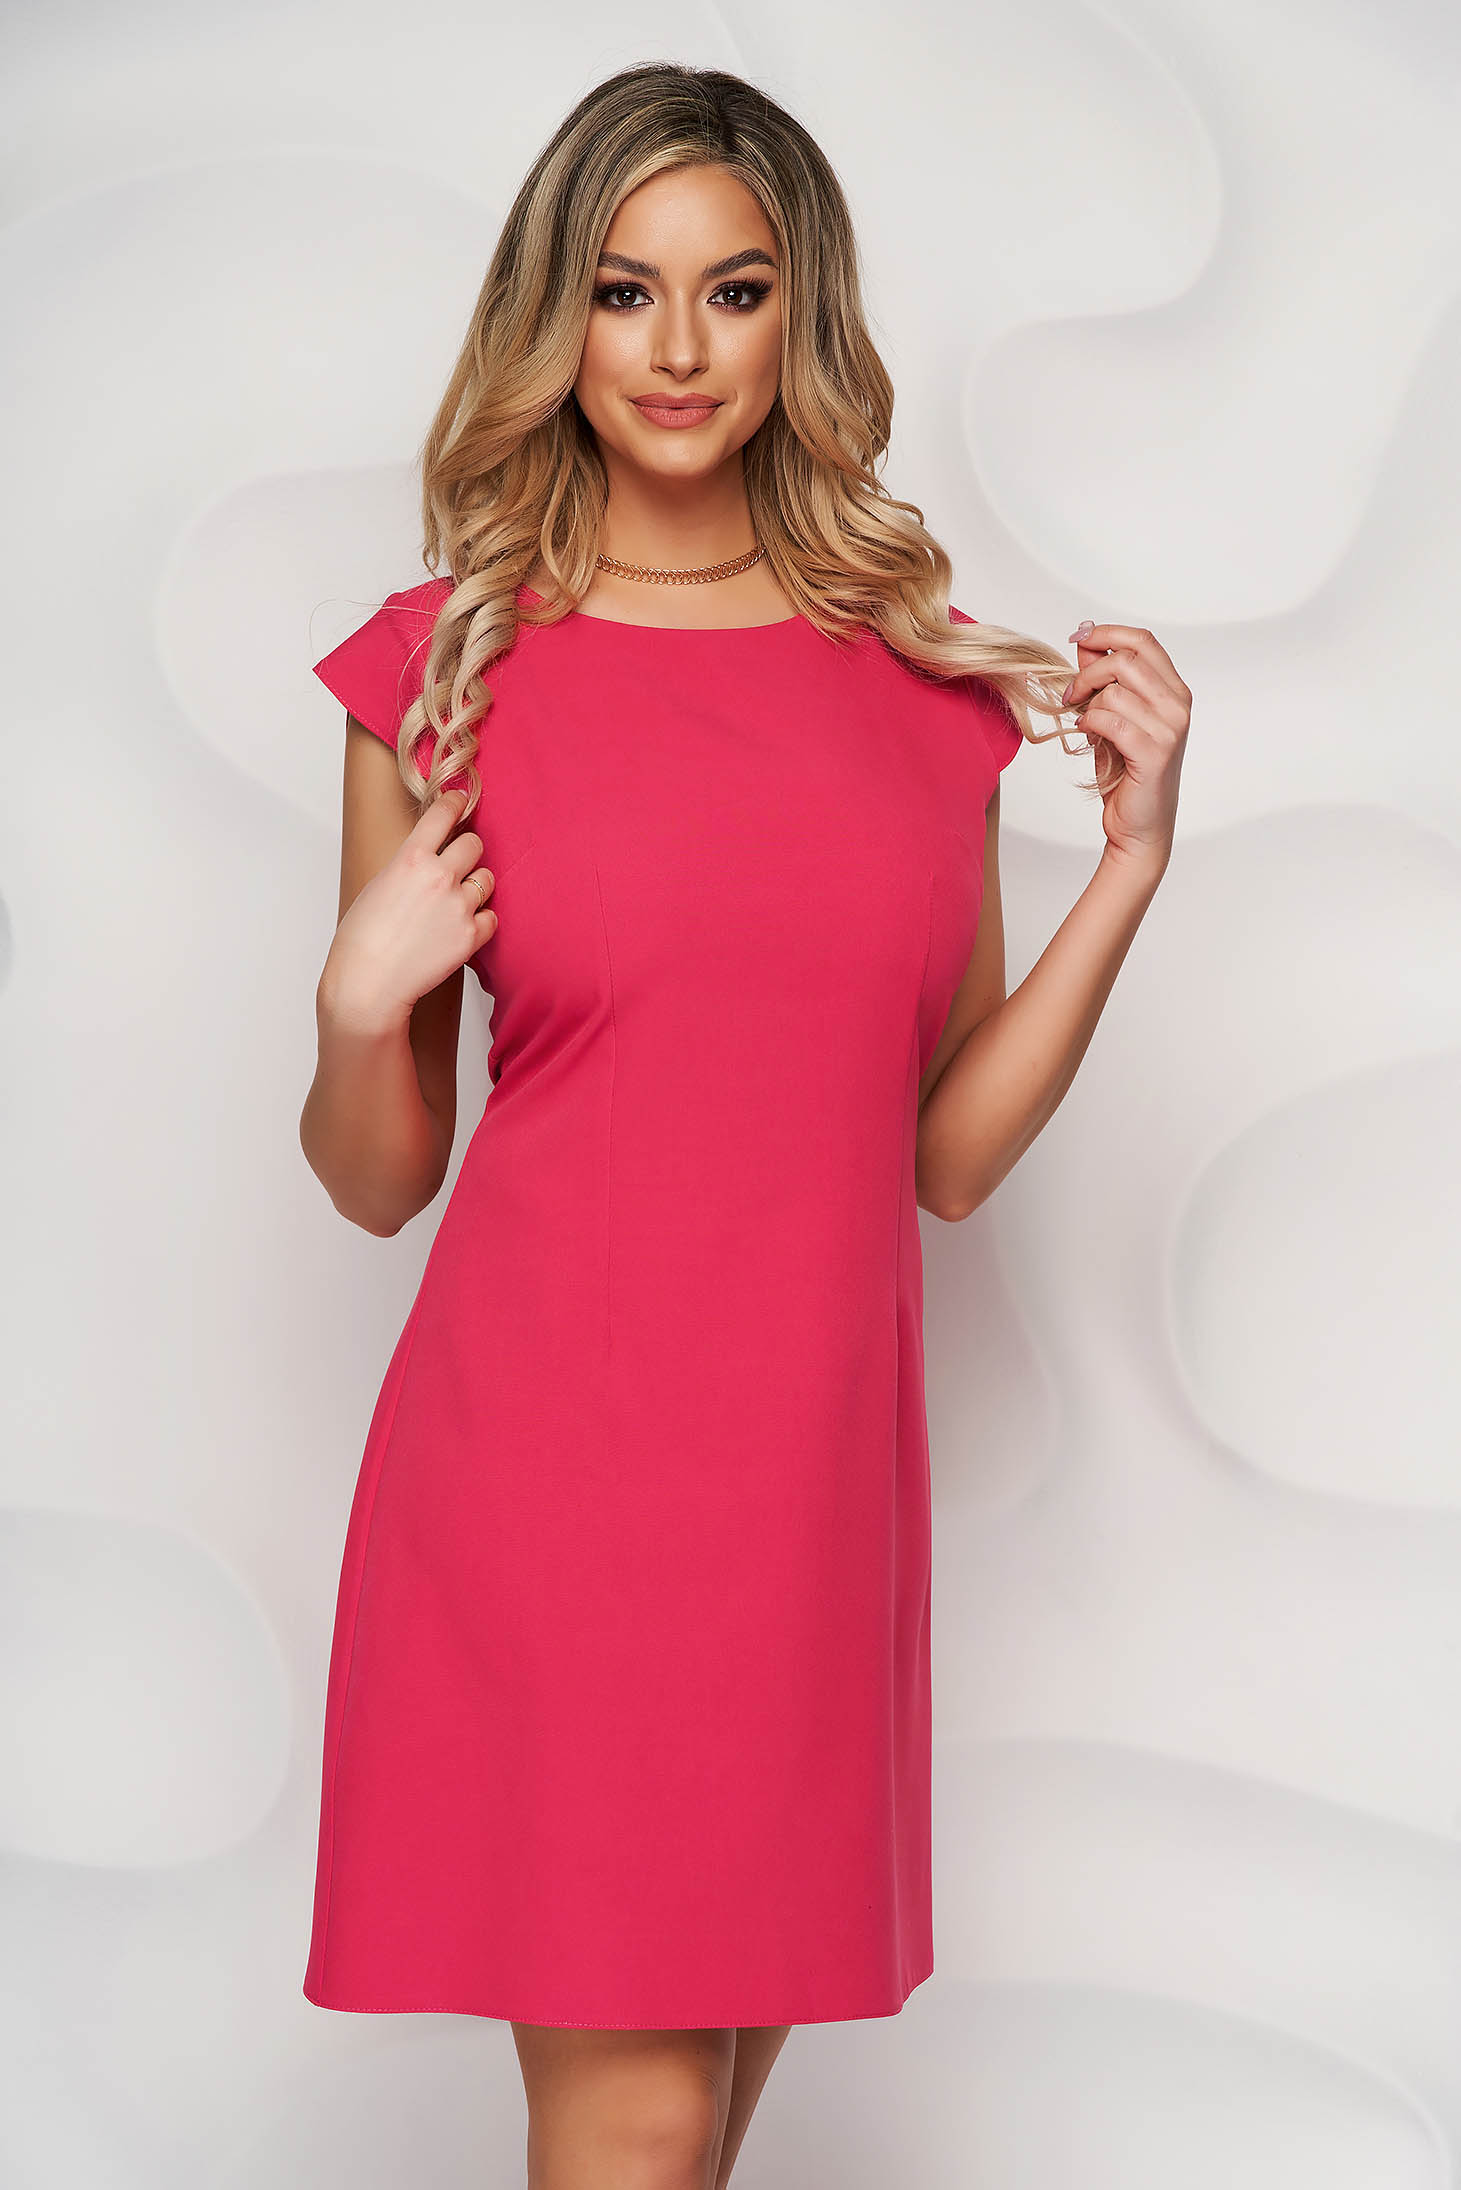 Red dress a-line slightly elastic fabric with rounded cleavage